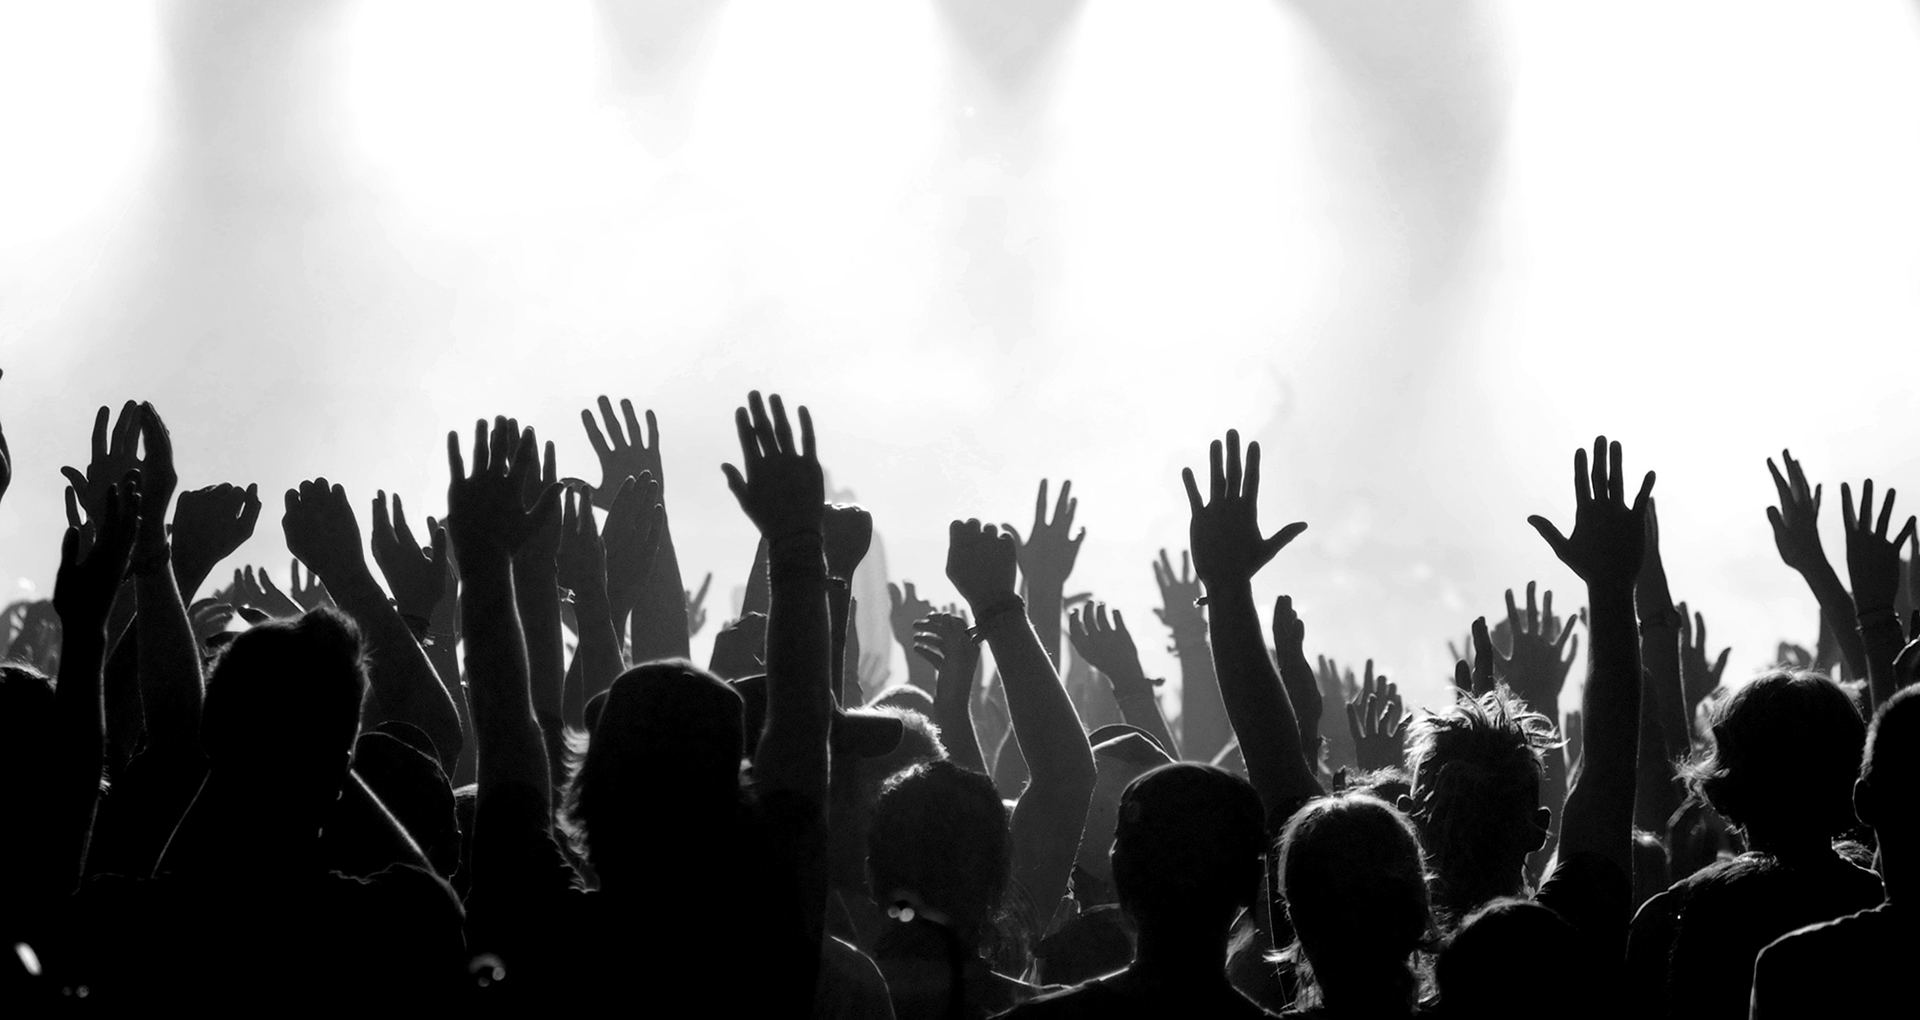 Concert Crowd Png Images Pictures   Becuo 1920x1020